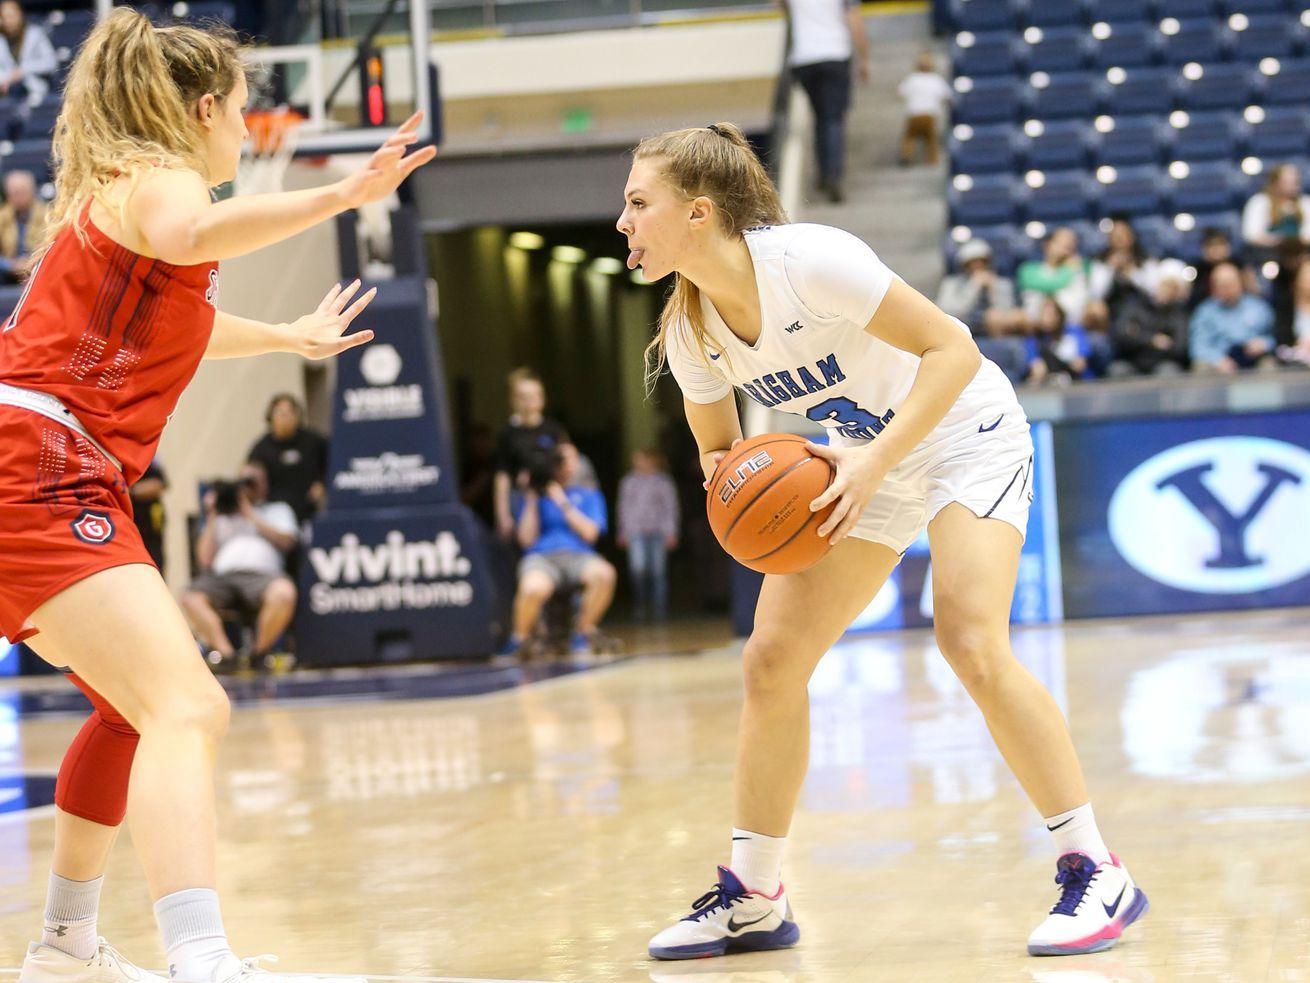 Physical Pepperdine Squad Knocks Byu Out Of Wcc Women S Tournament 62 51 West Coast Conference Basketball Teams Women